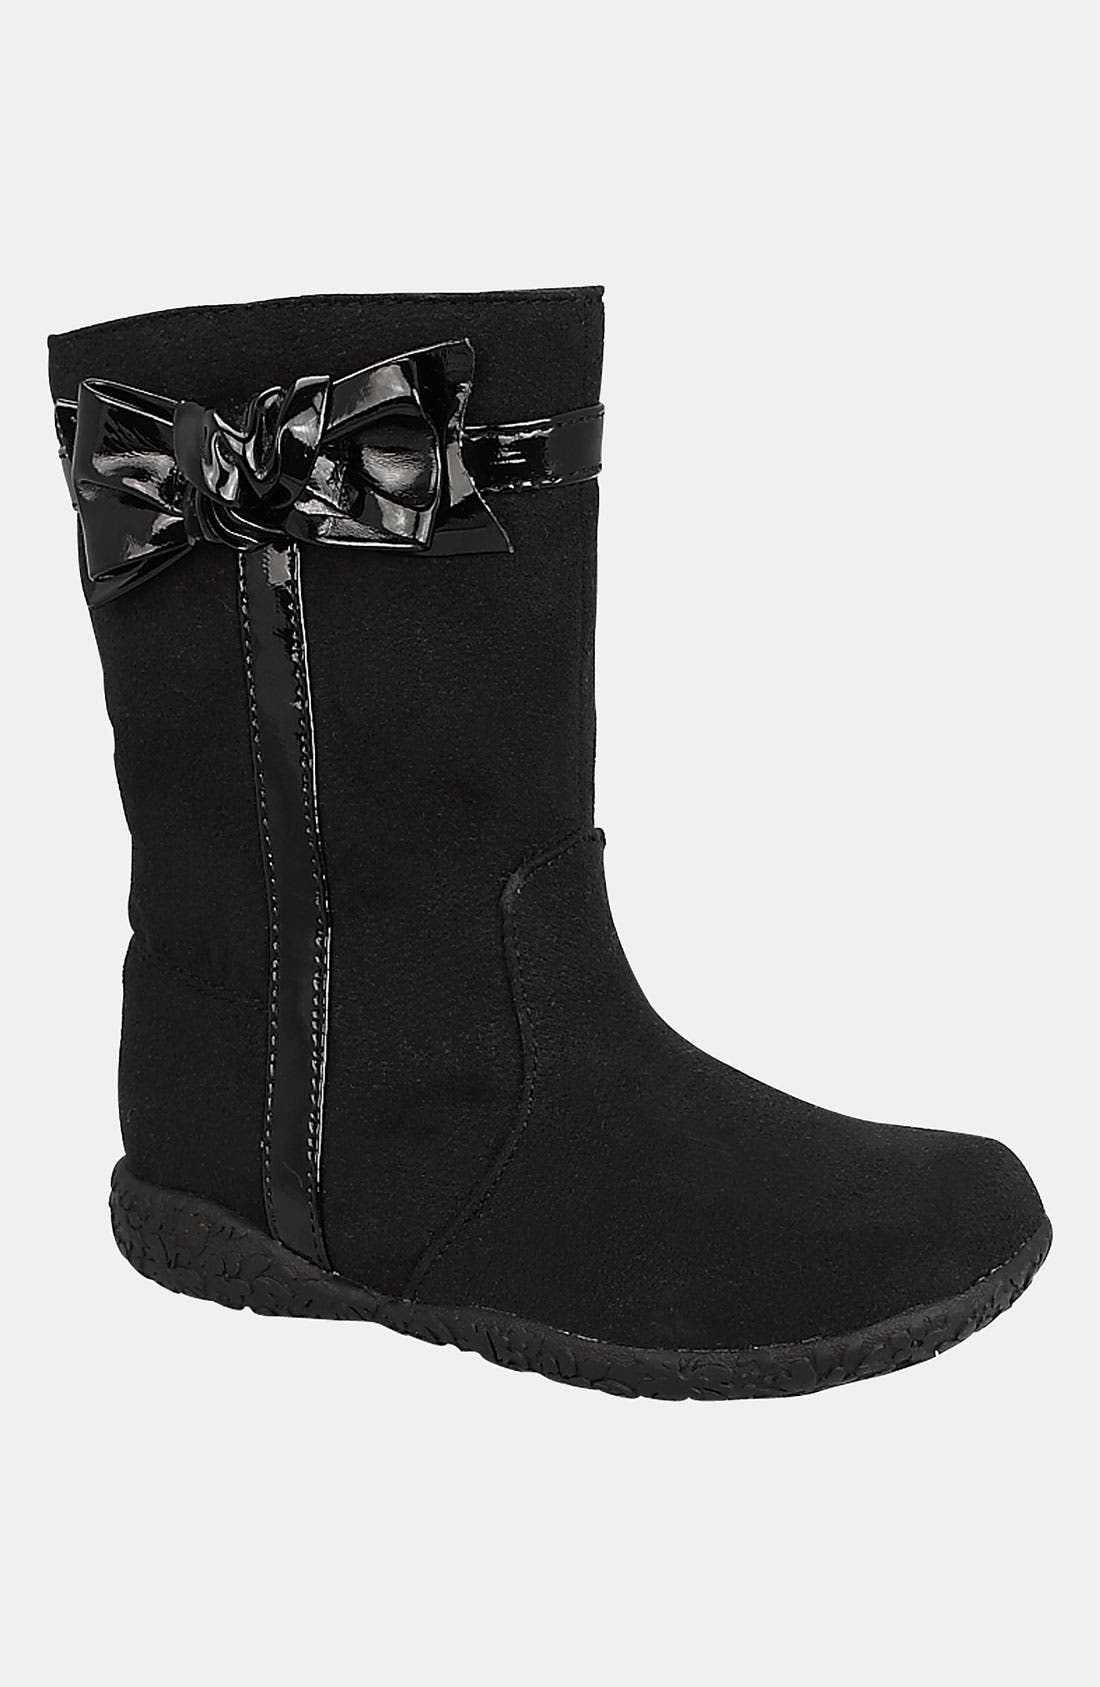 'Rosabel' Boot,                         Main,                         color, Black/ Black